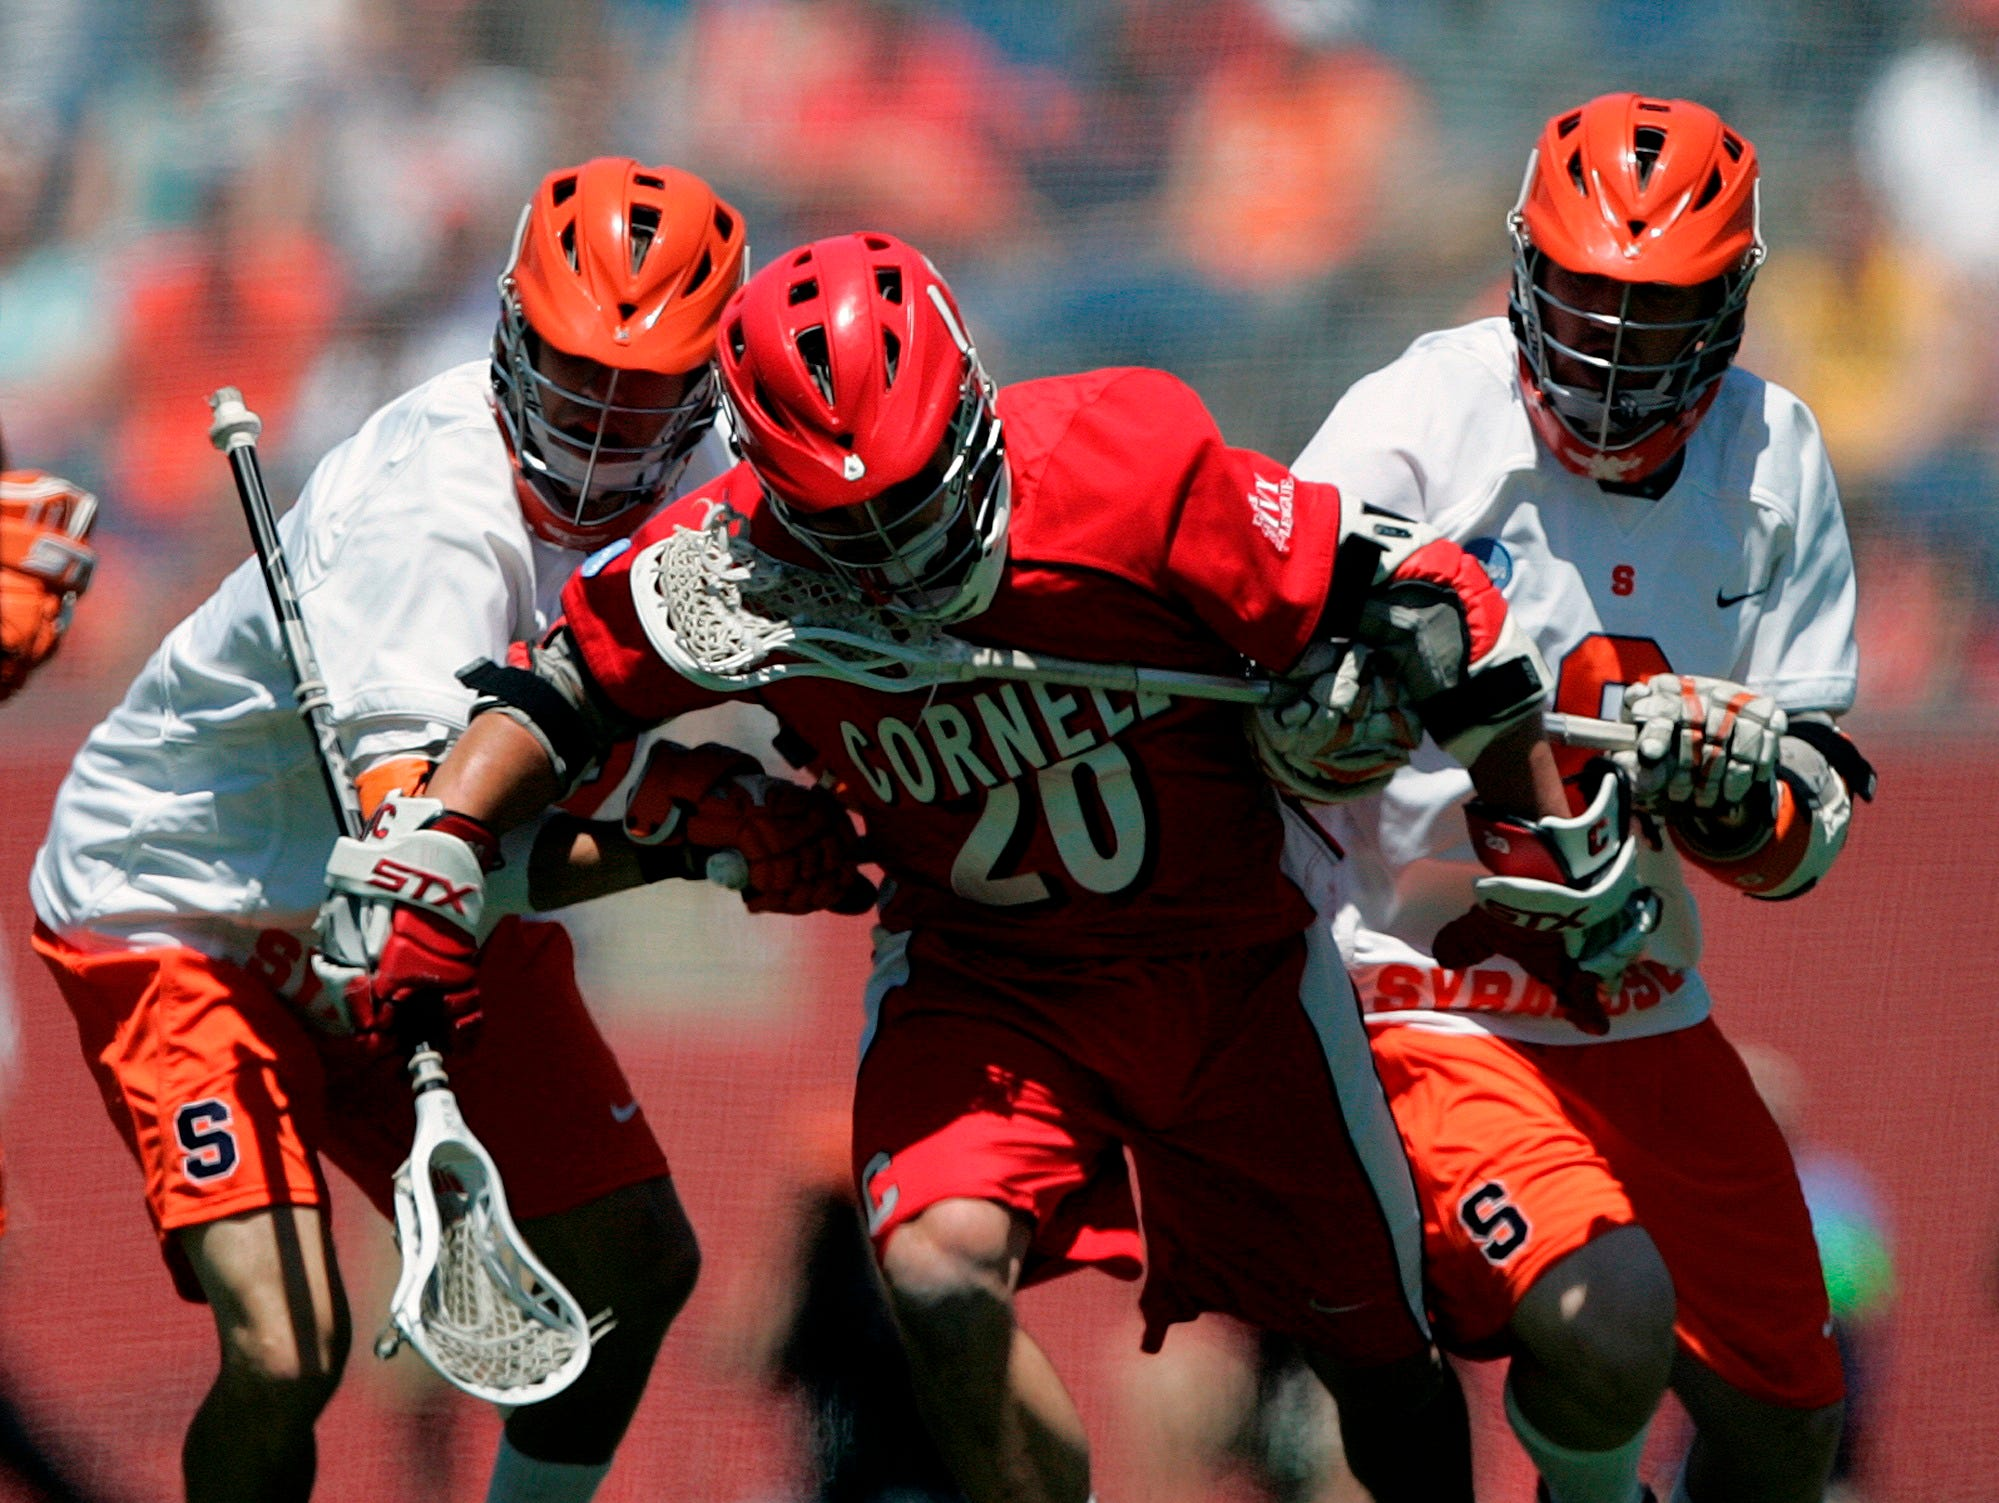 Cornell's John Glynn (20) battles Syracuse's Josh Amidon, left, and Jake Moulton for the loose ball in the first quarter of an NCAA Division 1 Men's lacrosse  championship game in Foxborough, Mass., Monday, May 25, 2009.